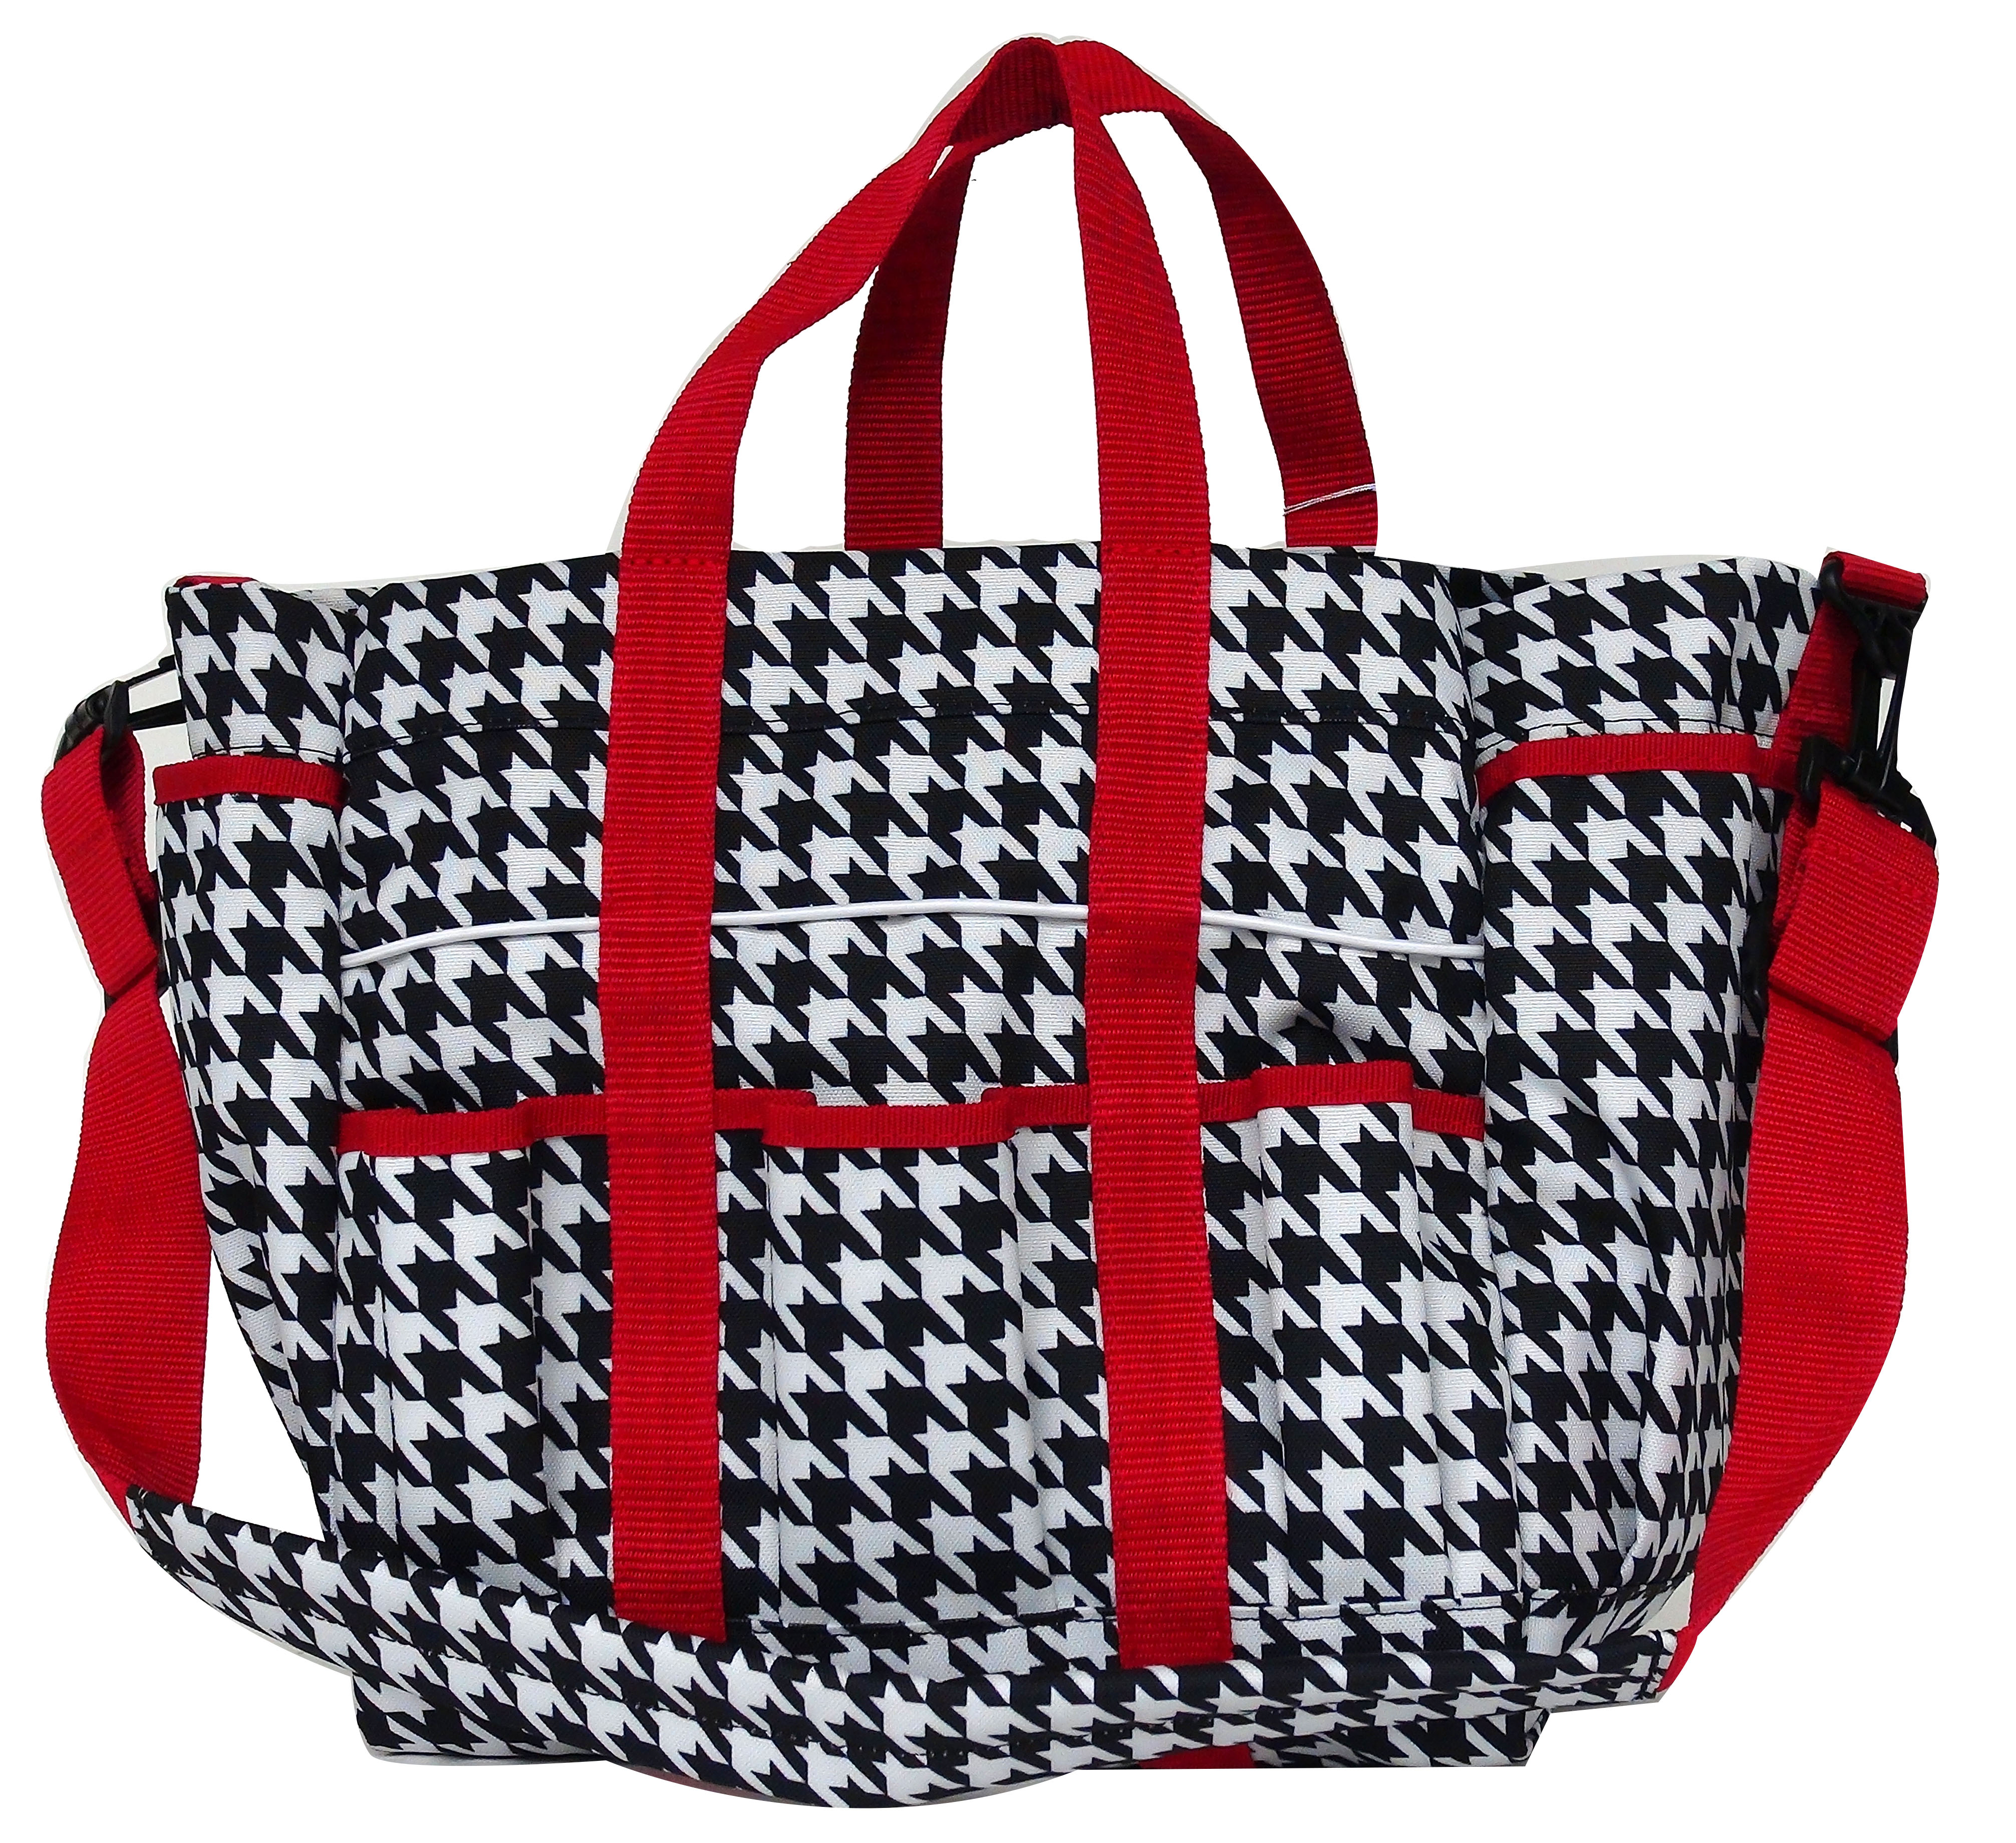 Lami-Cell Houndstooth Stable Tote - Large